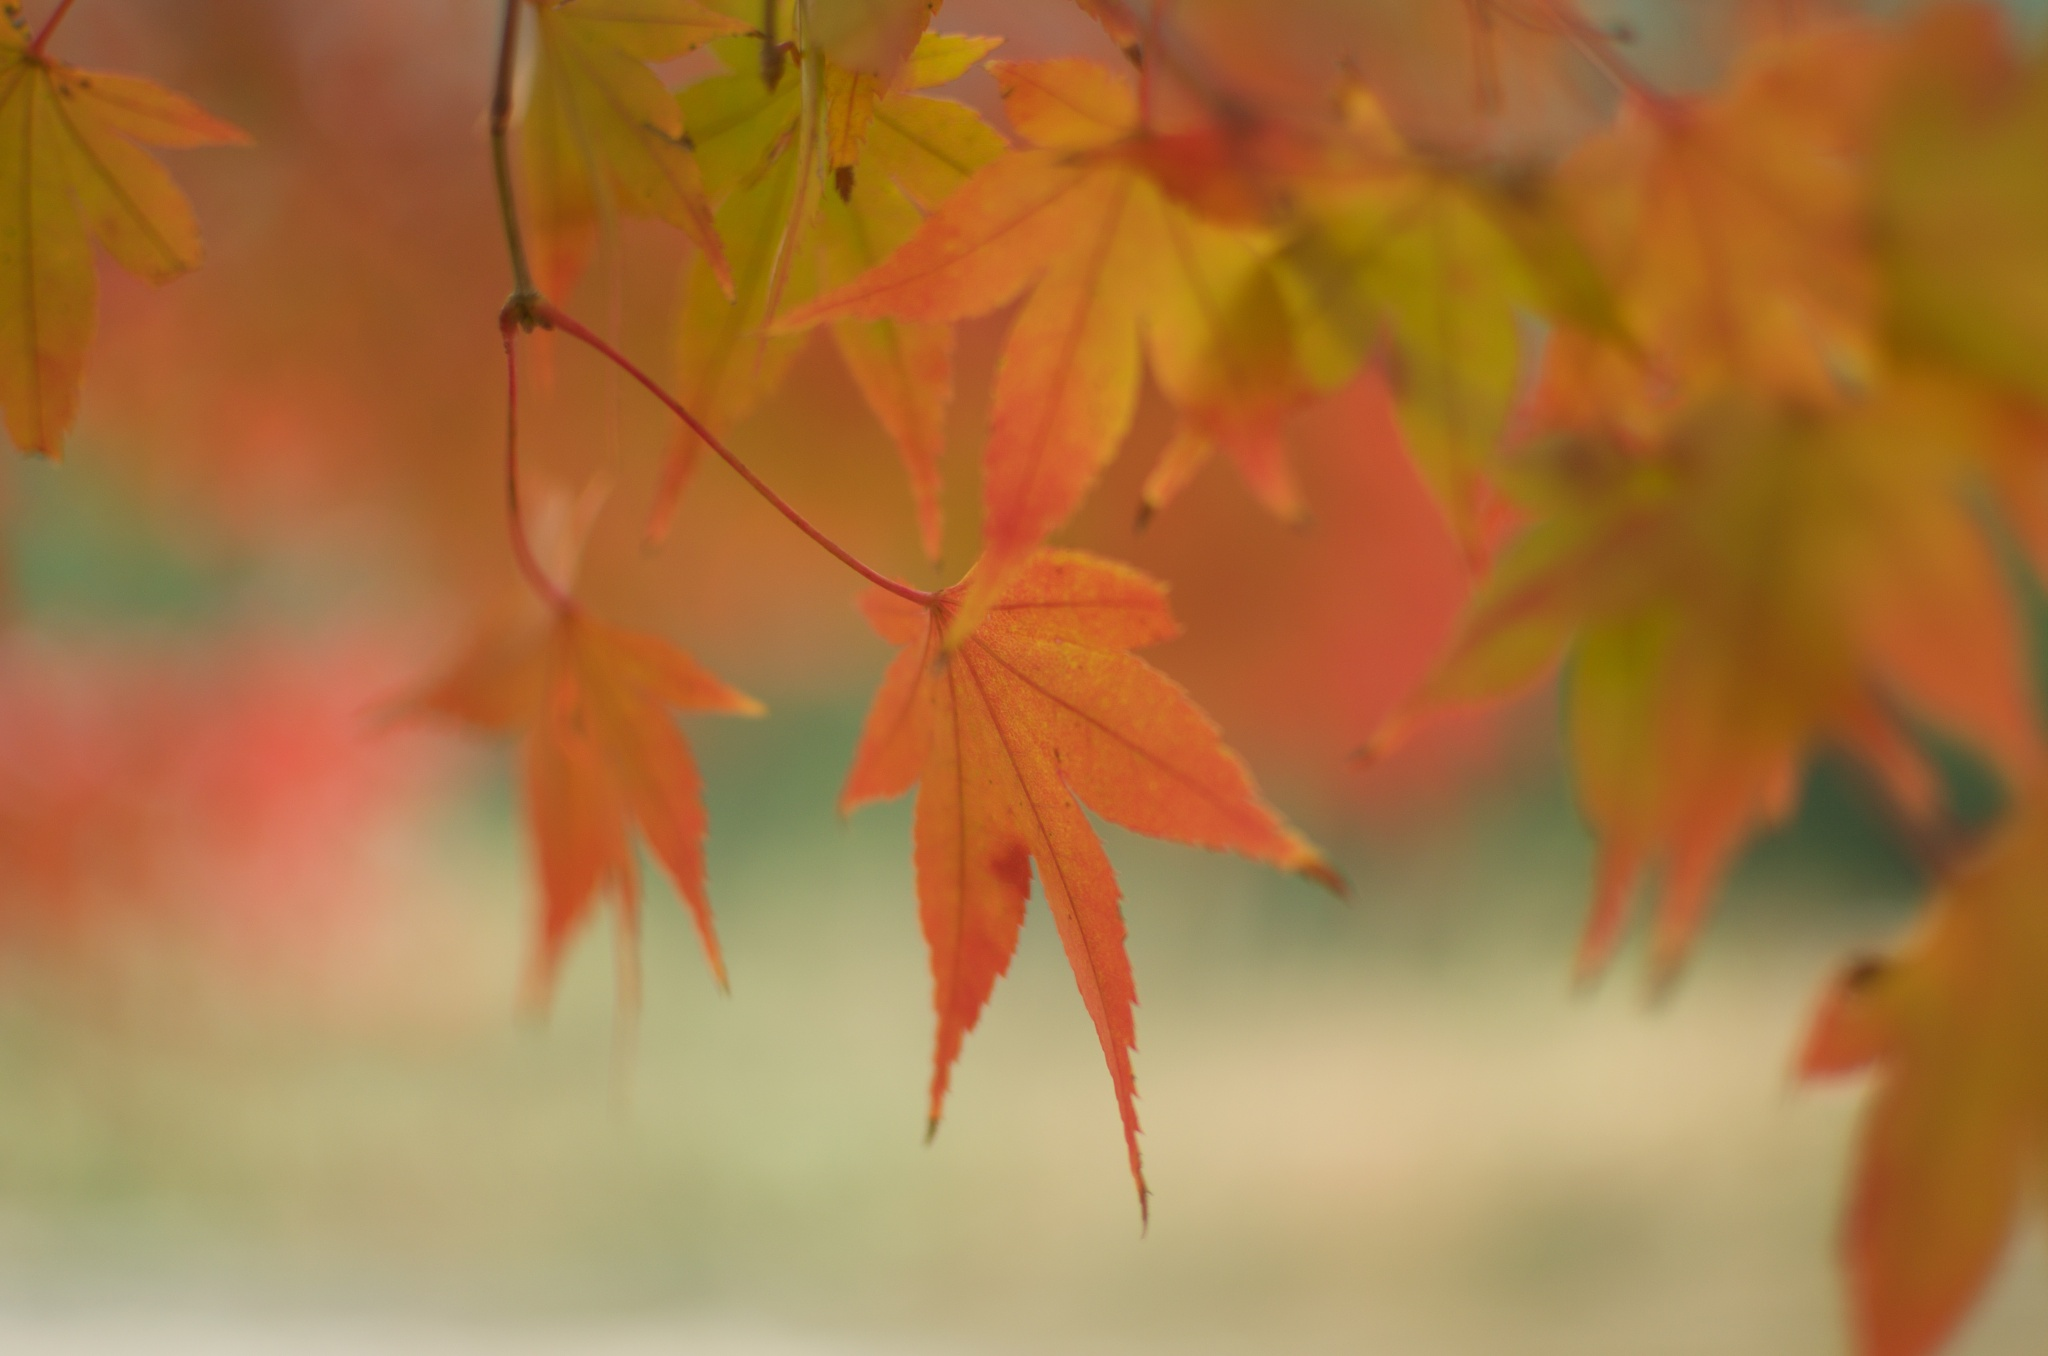 The Rest of the Autumn #2 by AYA World Photography